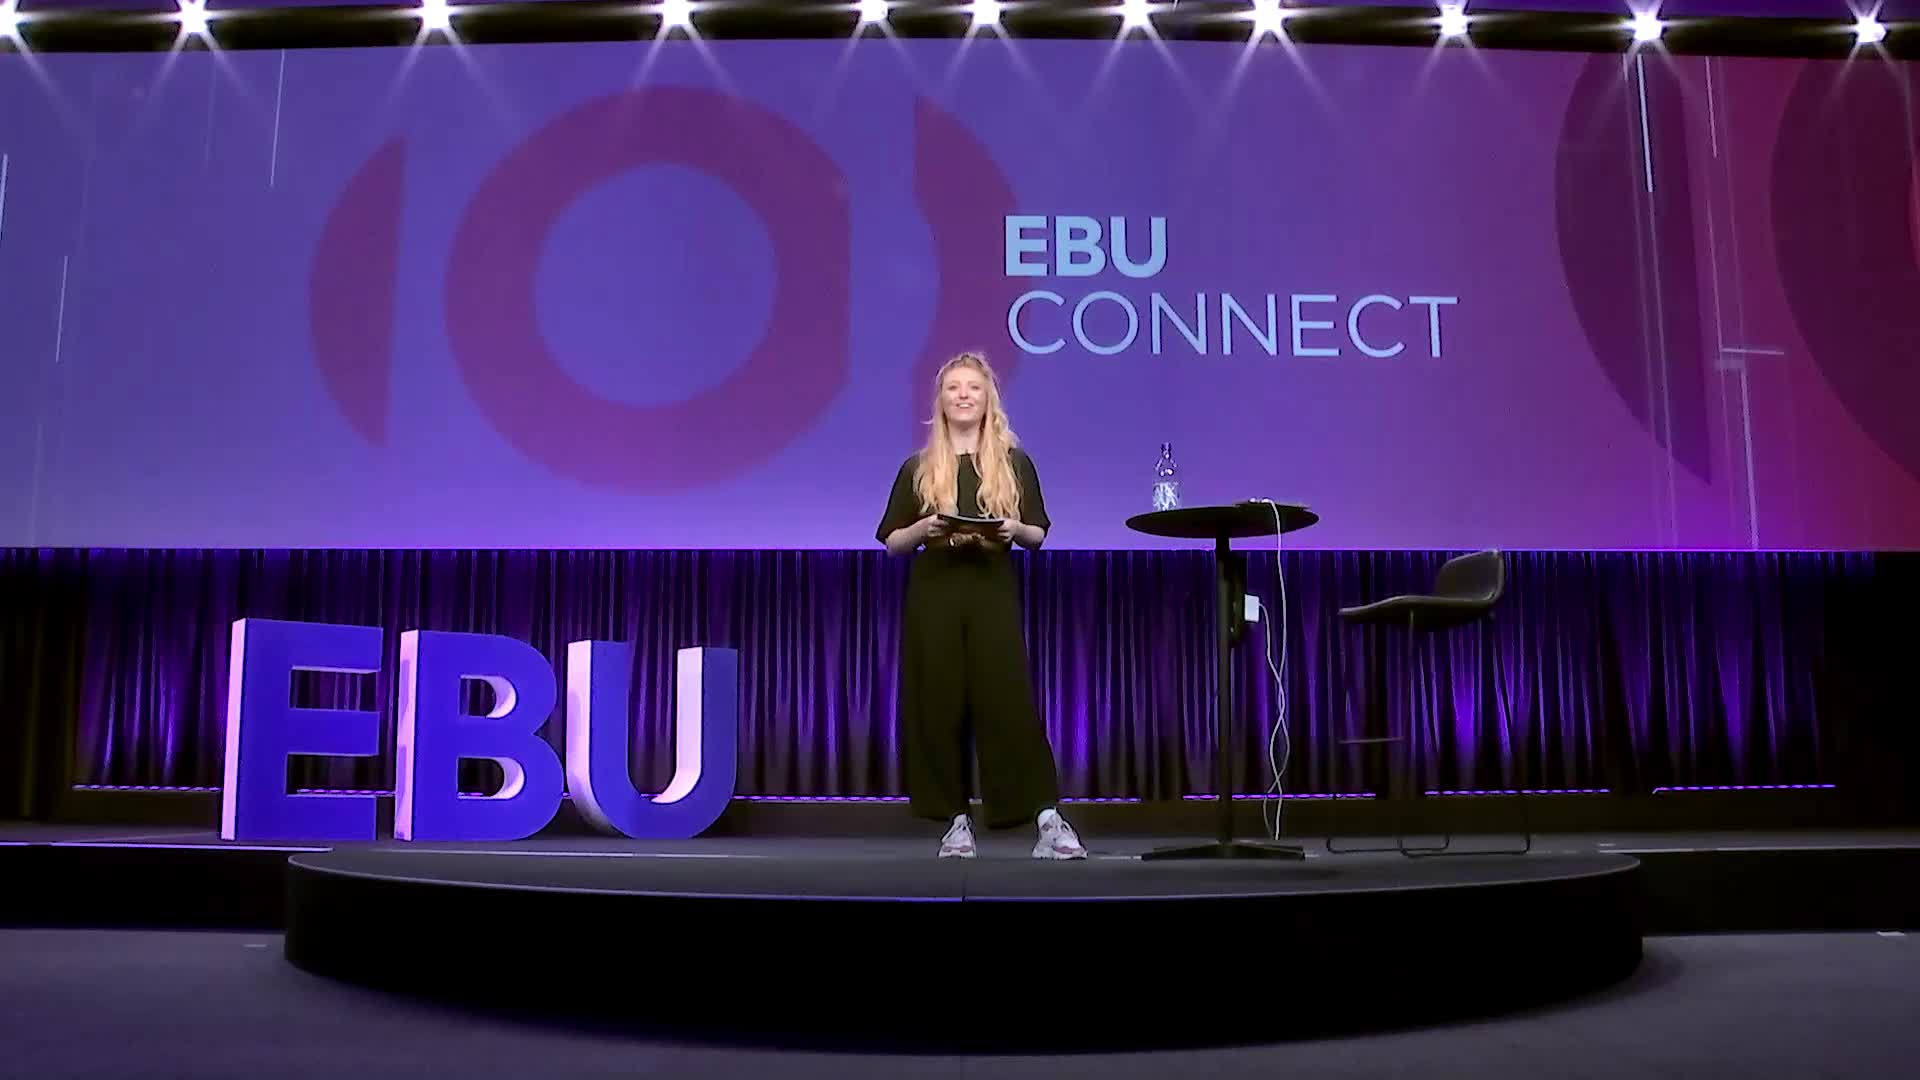 Welcome to EBU Connect 2021